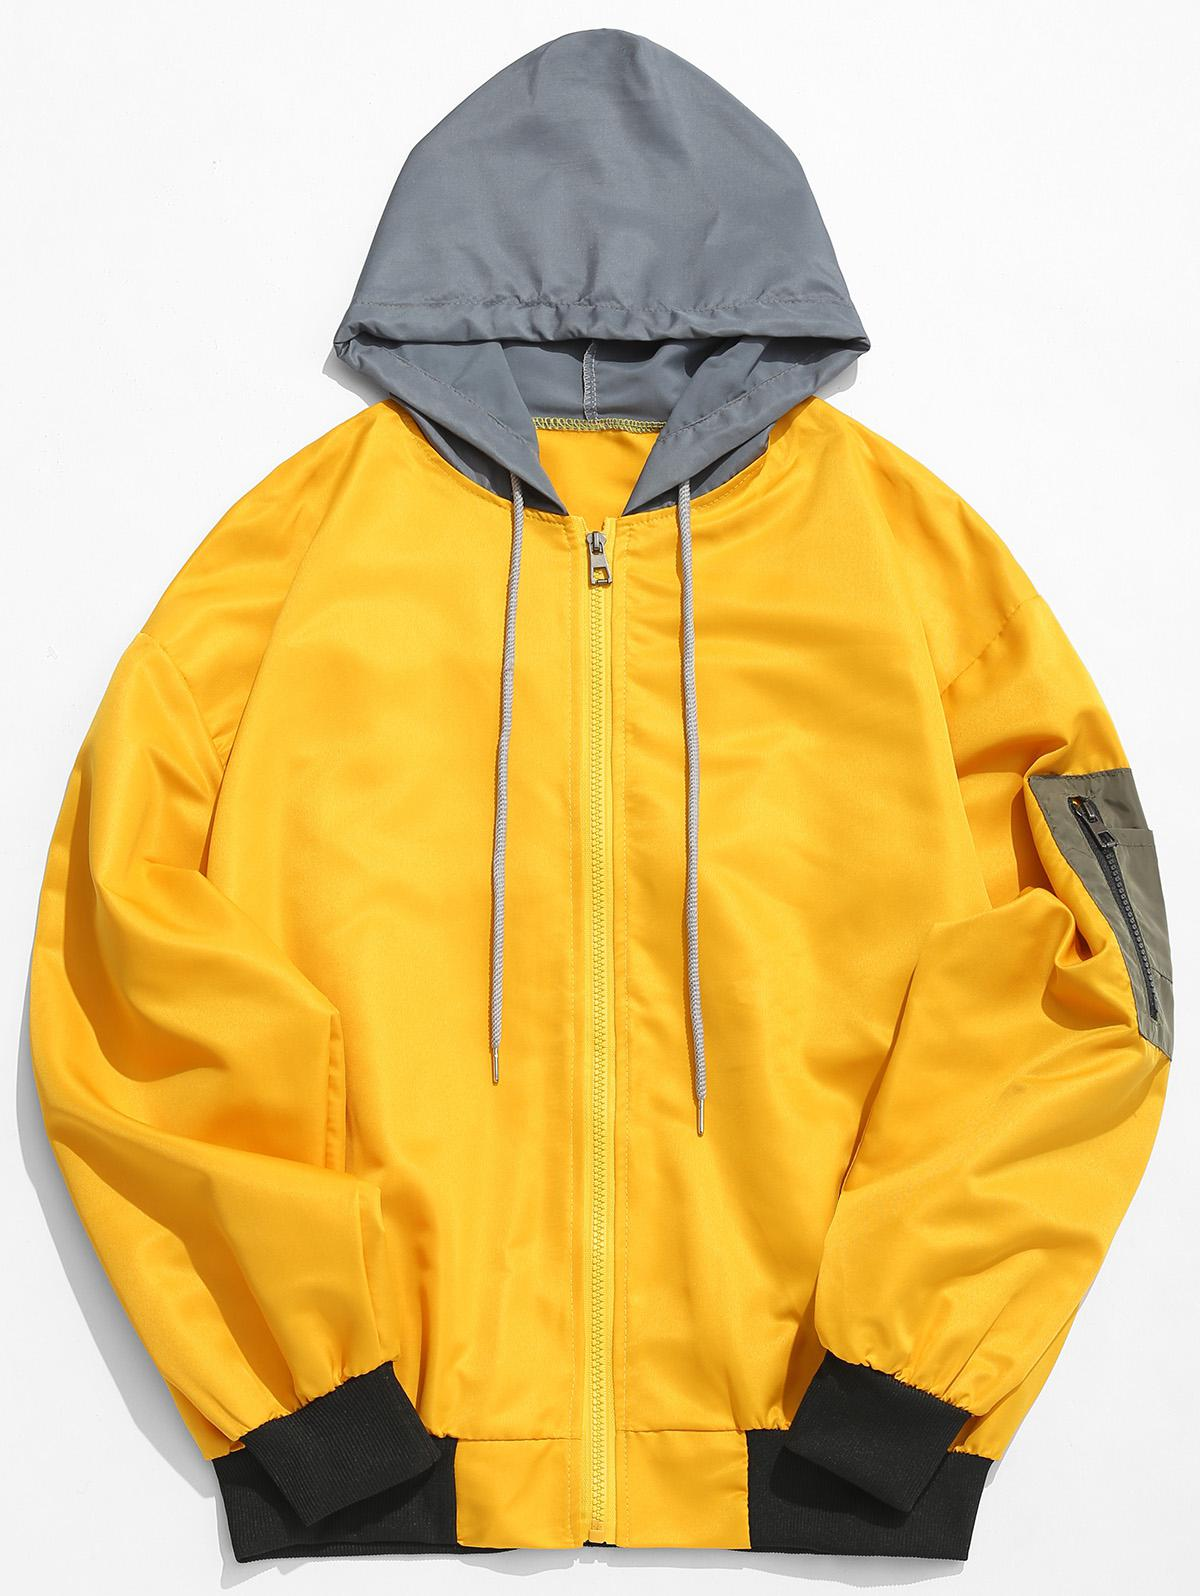 Color Block Sunproof Lightweight Jacket